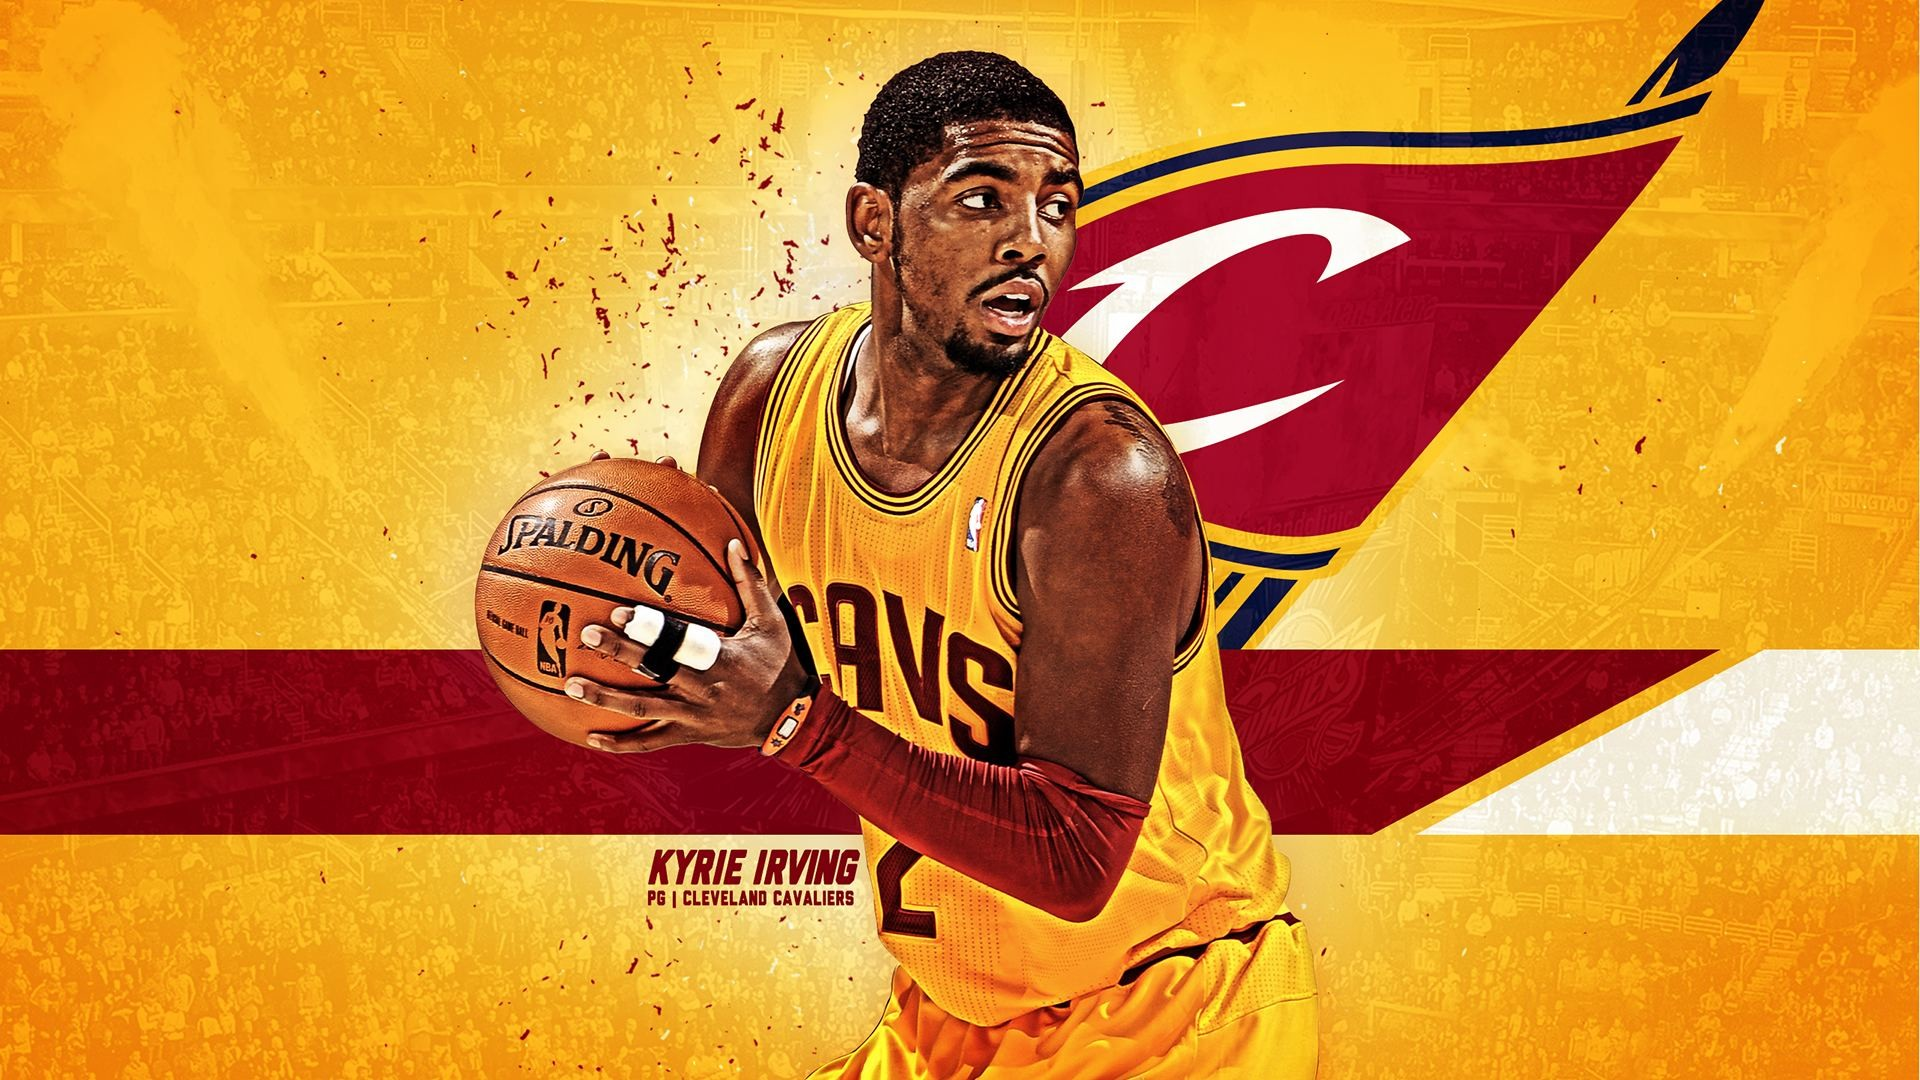 1920x1080 gorgeous kyrie irving wallpaper hd wallpapers cool images high definition  amazing artwork smart phones colourful digital photos 1920×1080 Wallpaper HD